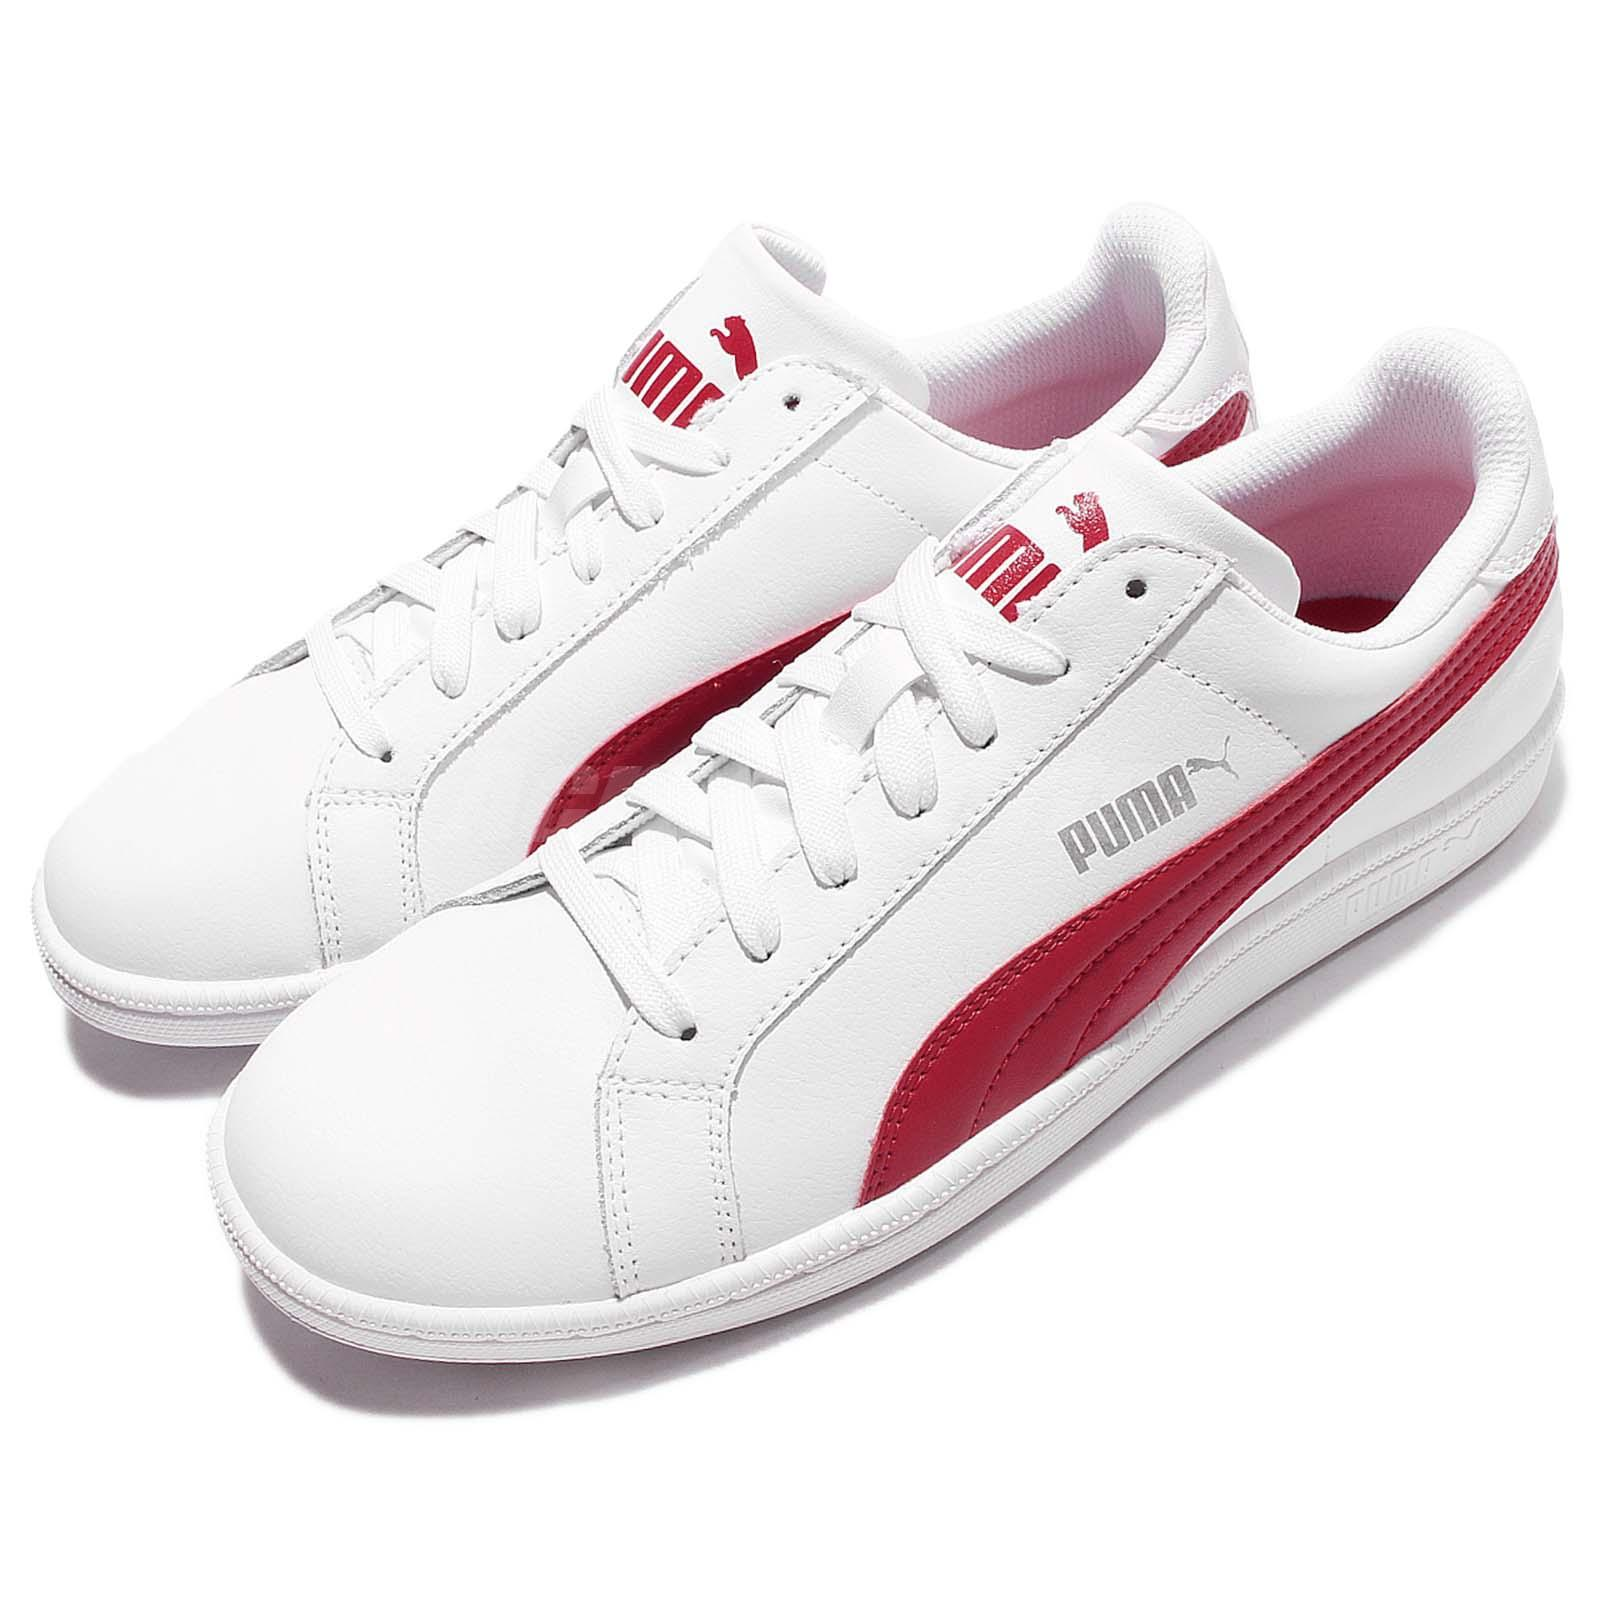 Mens White Puma Tennis Shoes